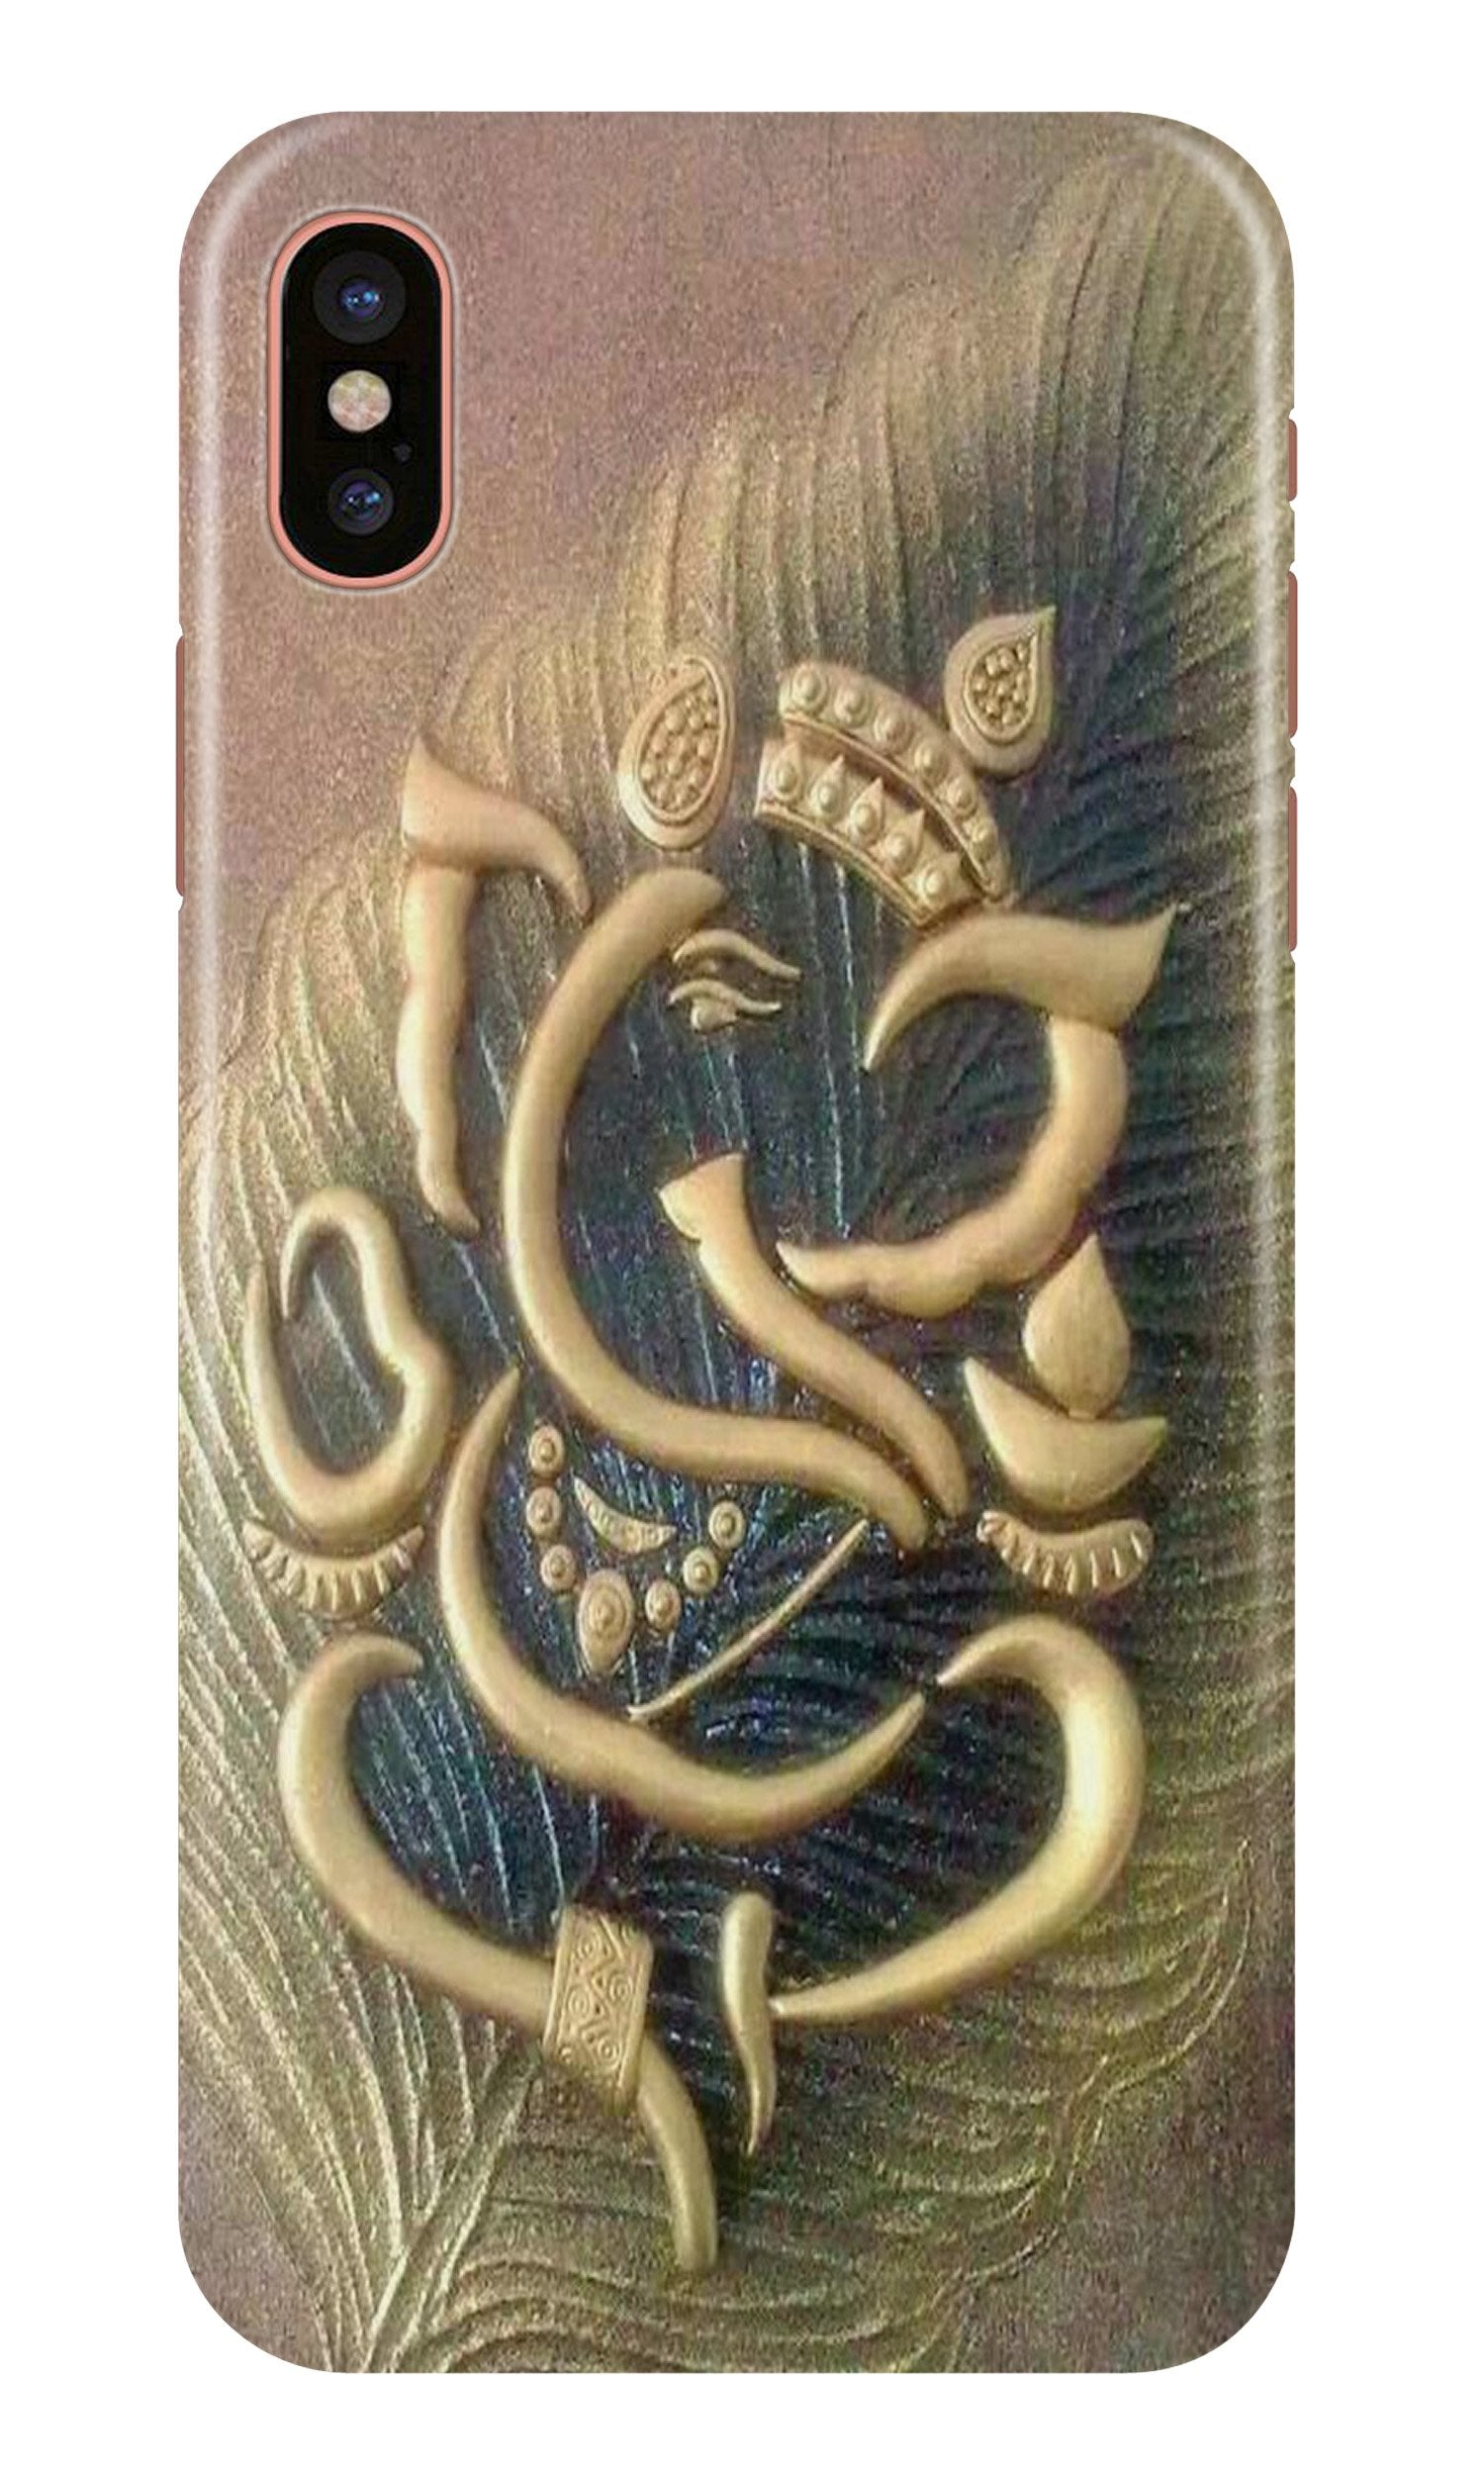 Lord Ganesha Case for iPhone X